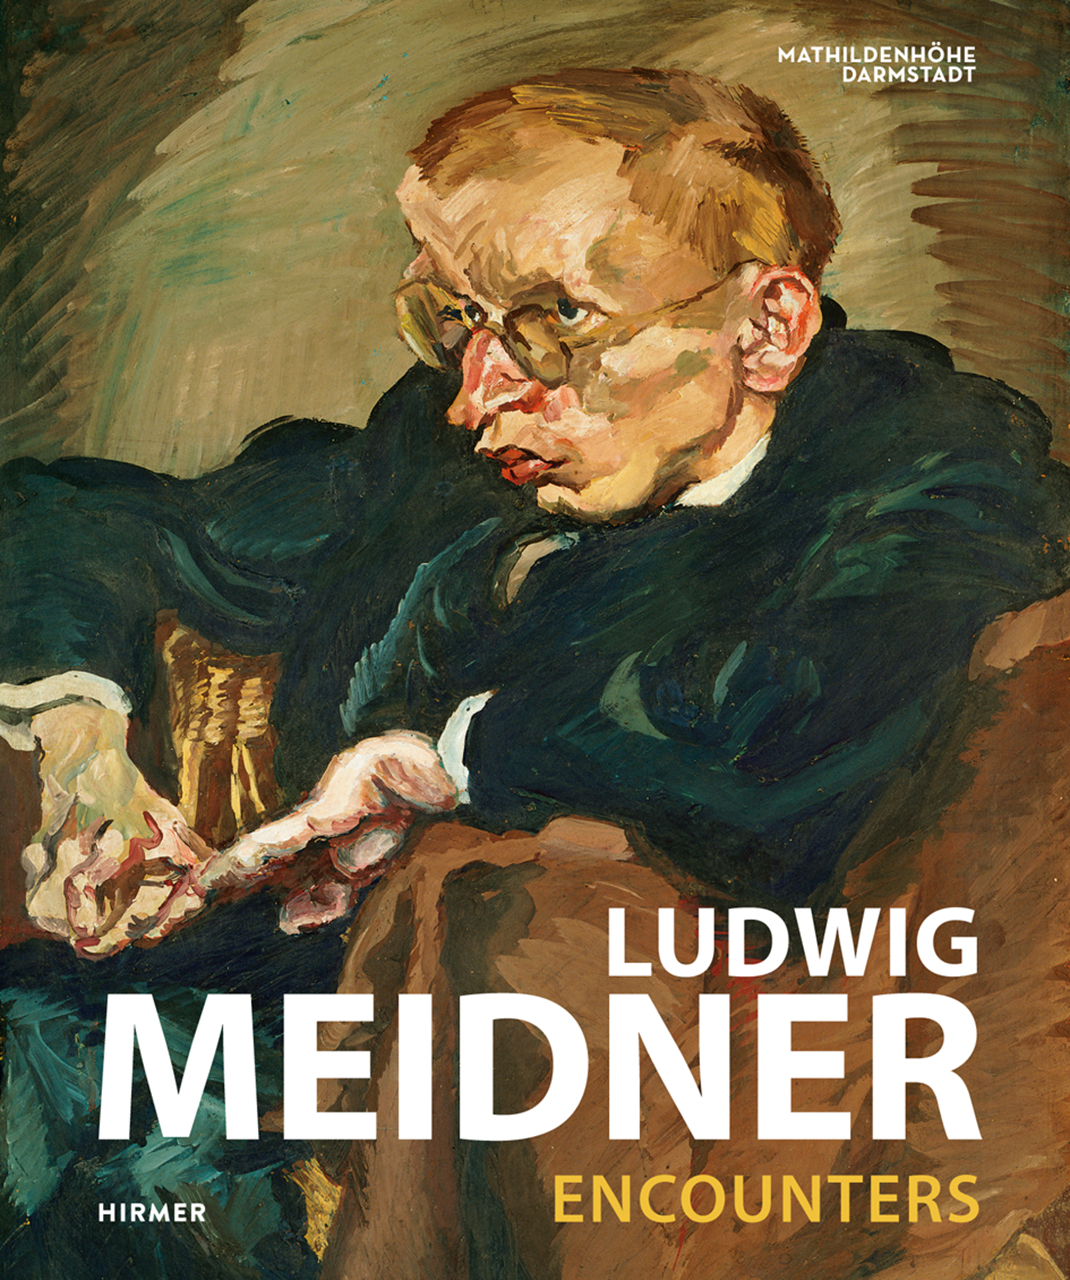 Ludwig Meidner: Encounters